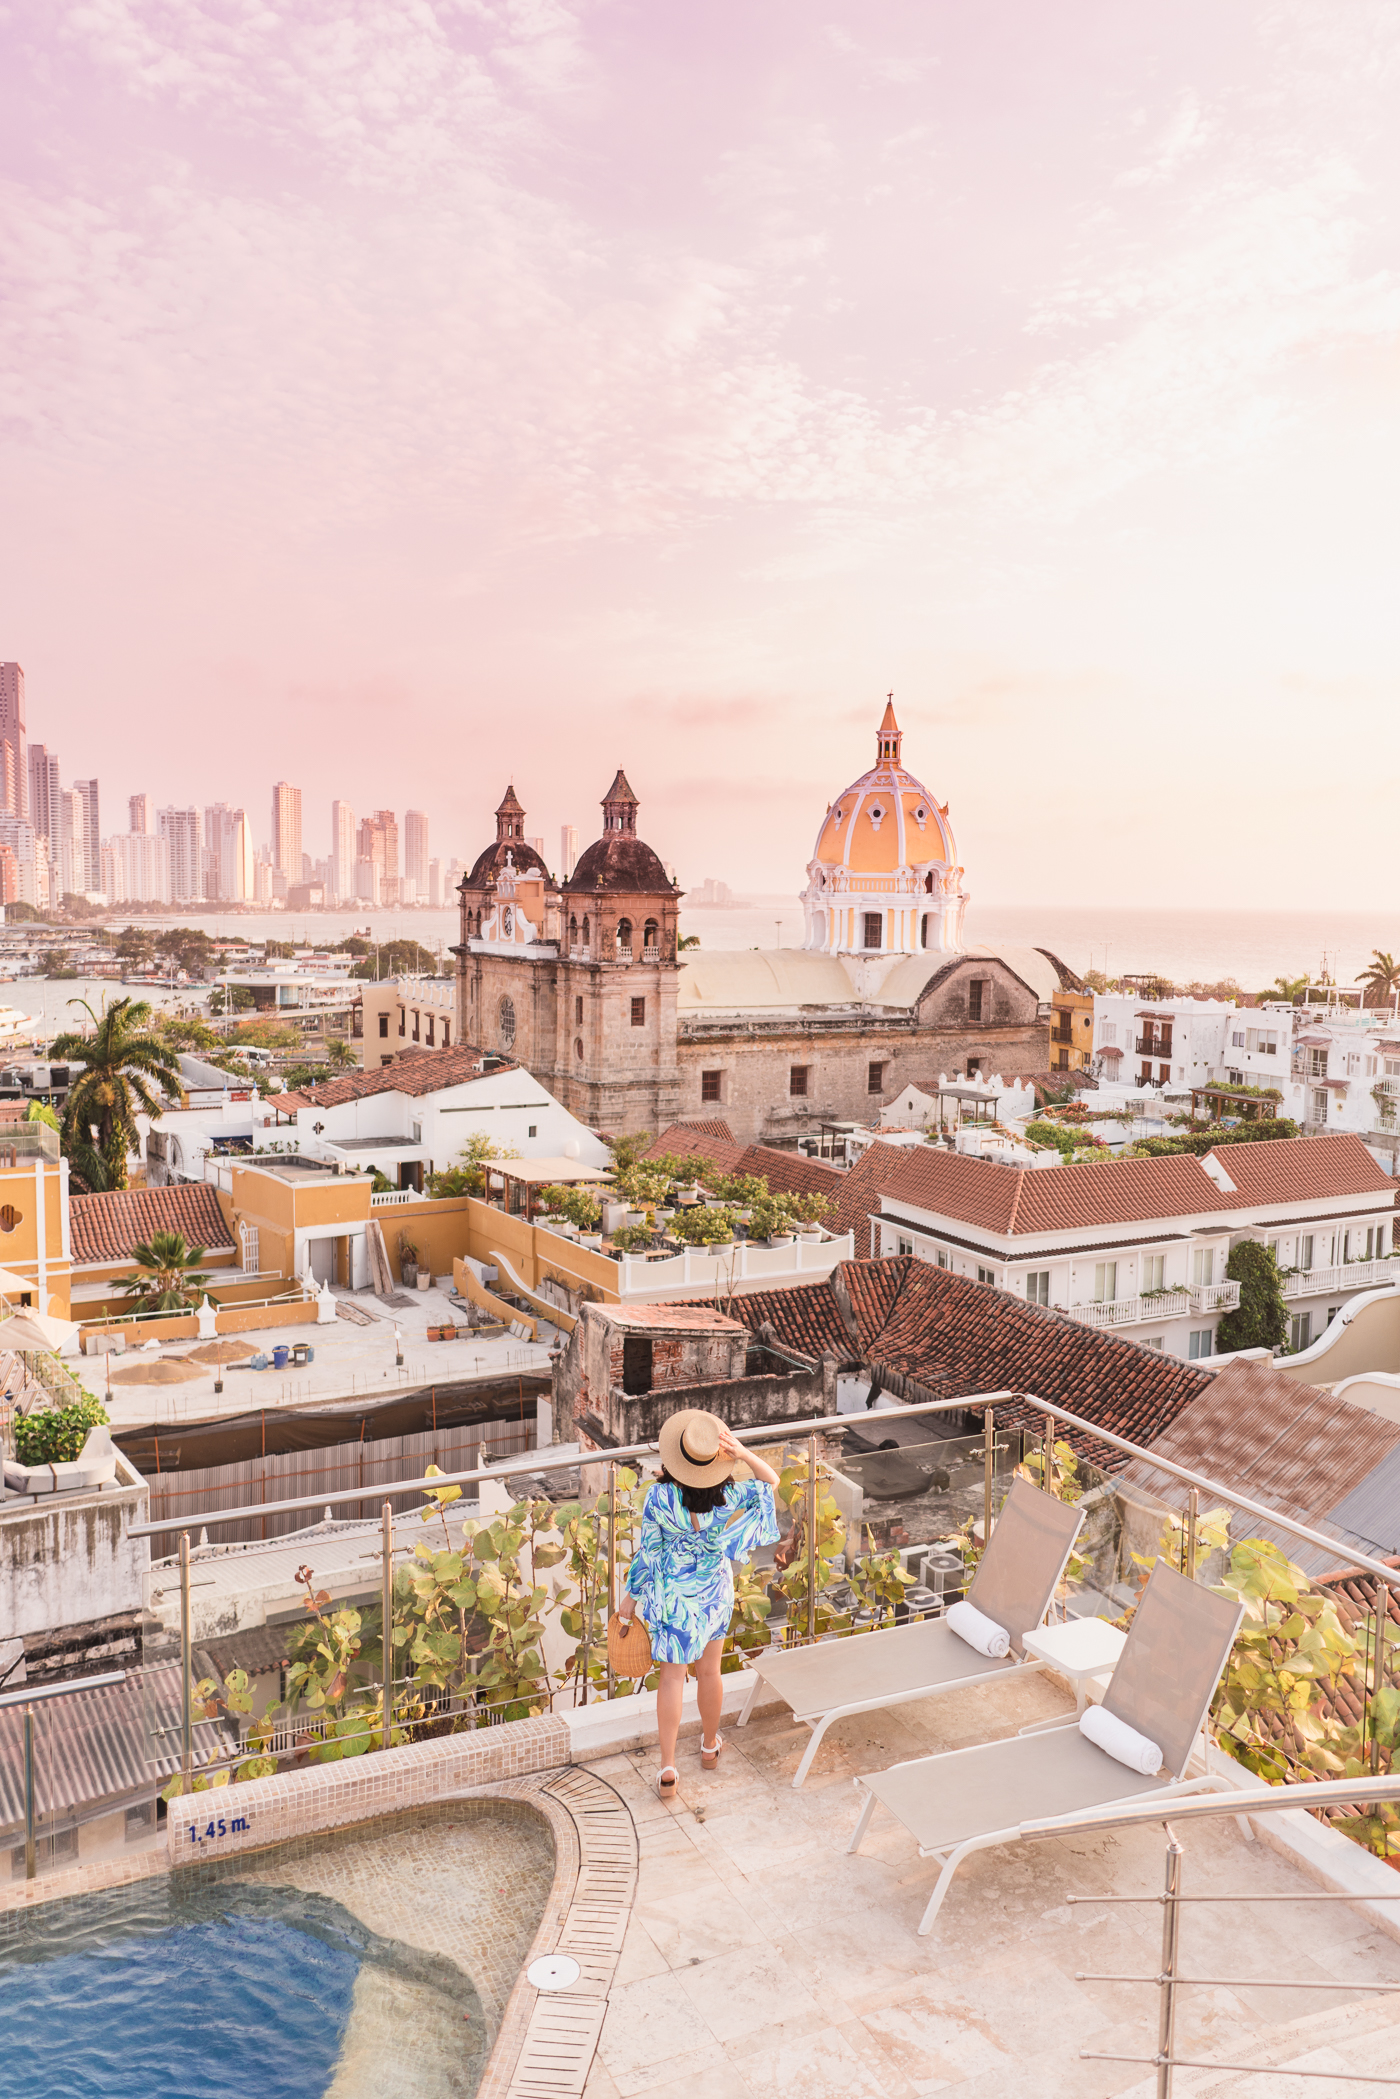 The Colors of Cartagena